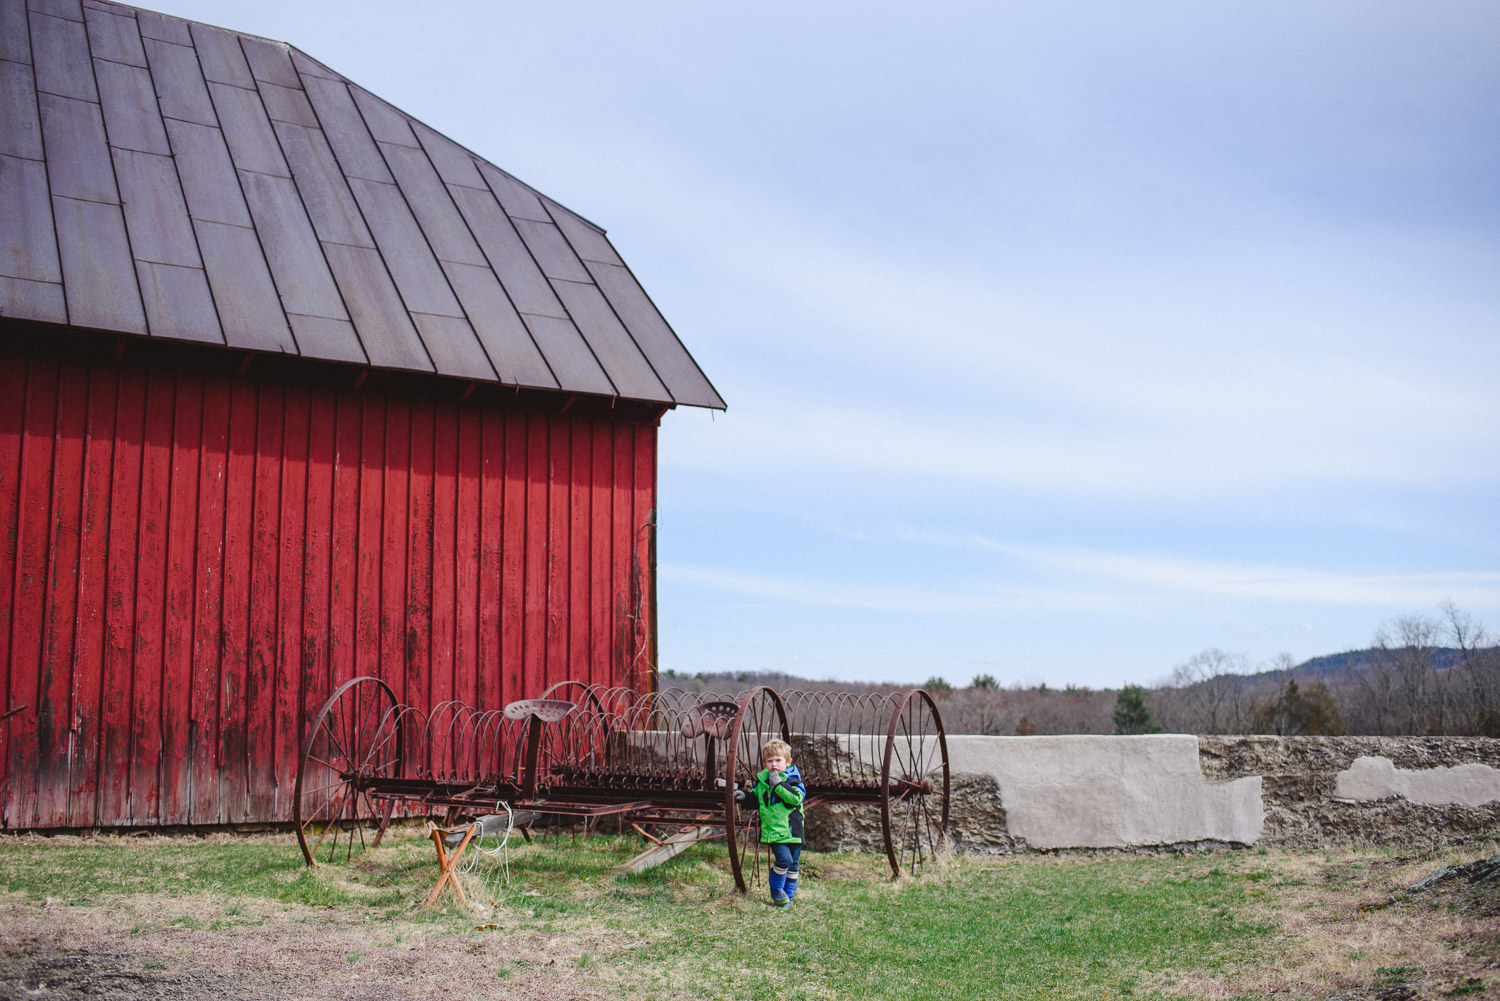 A little boy stands outside a red barn.